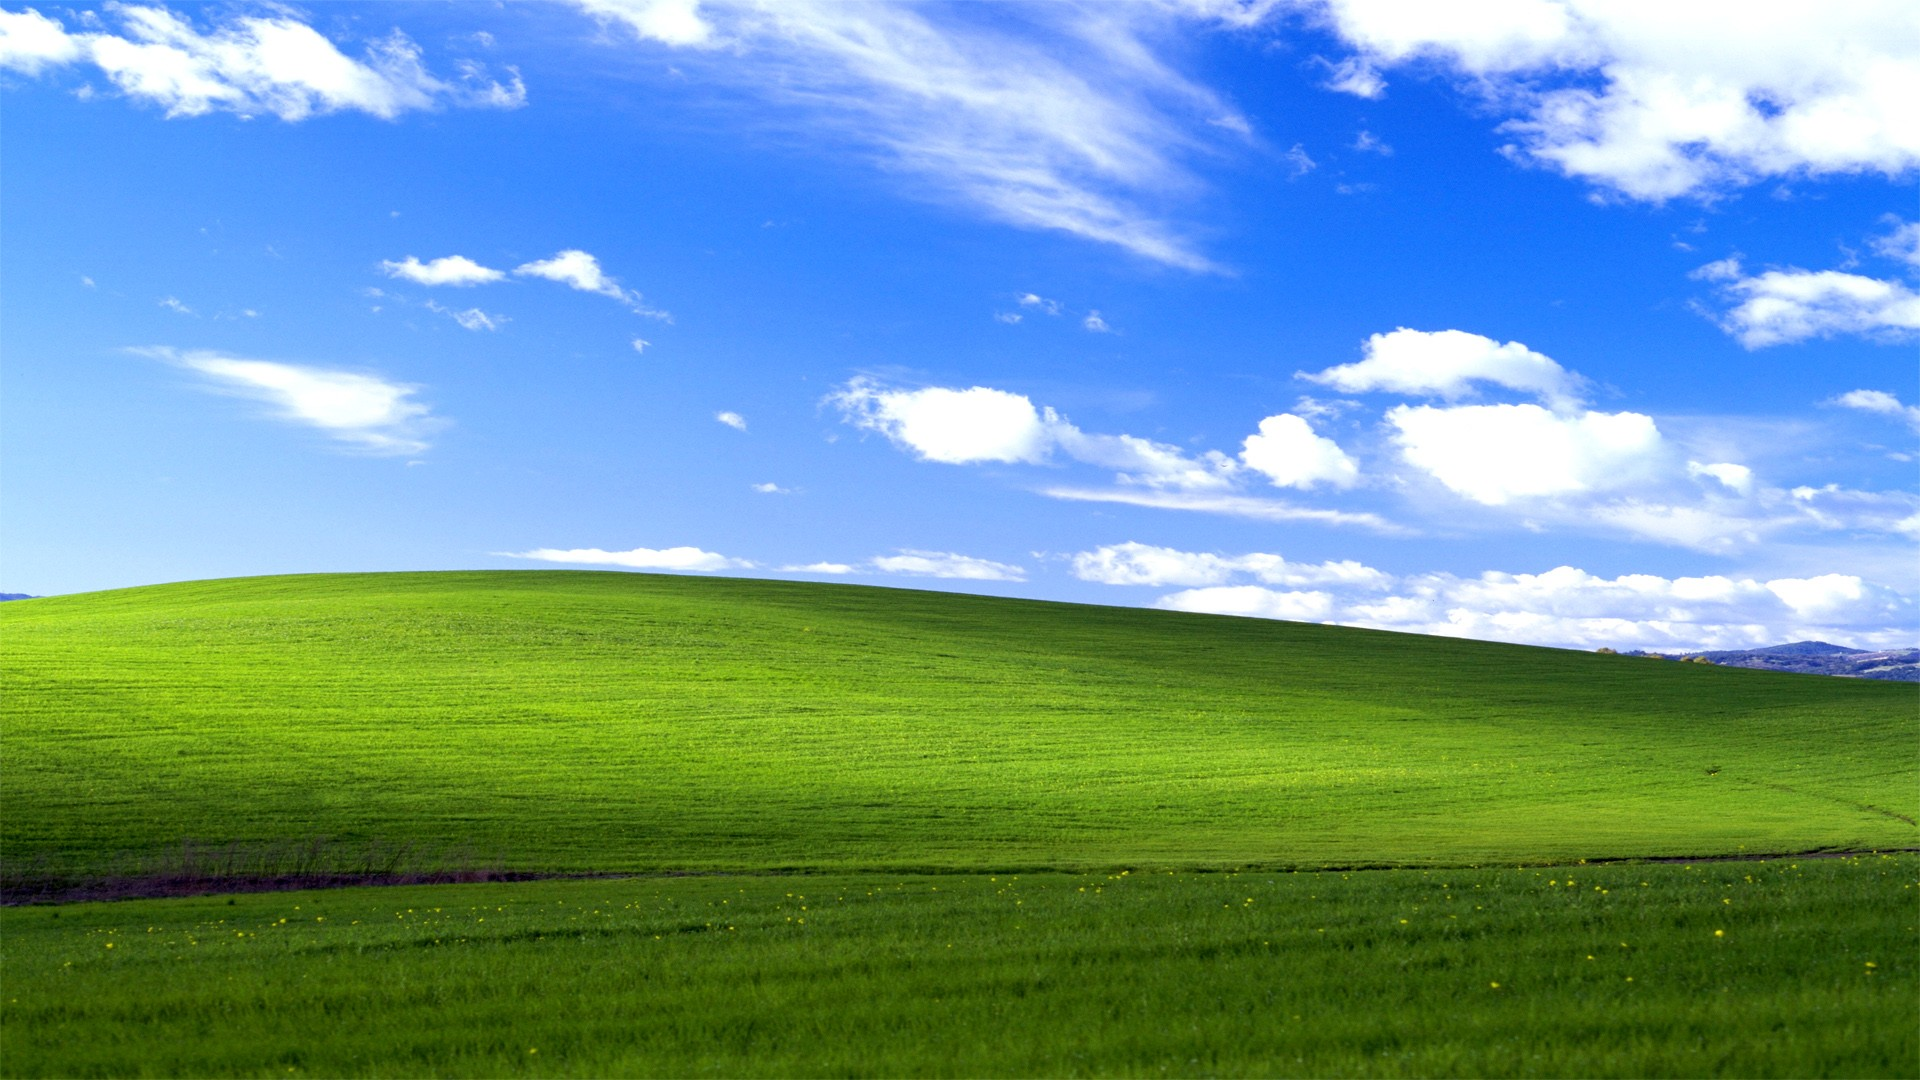 Windows XP Windows